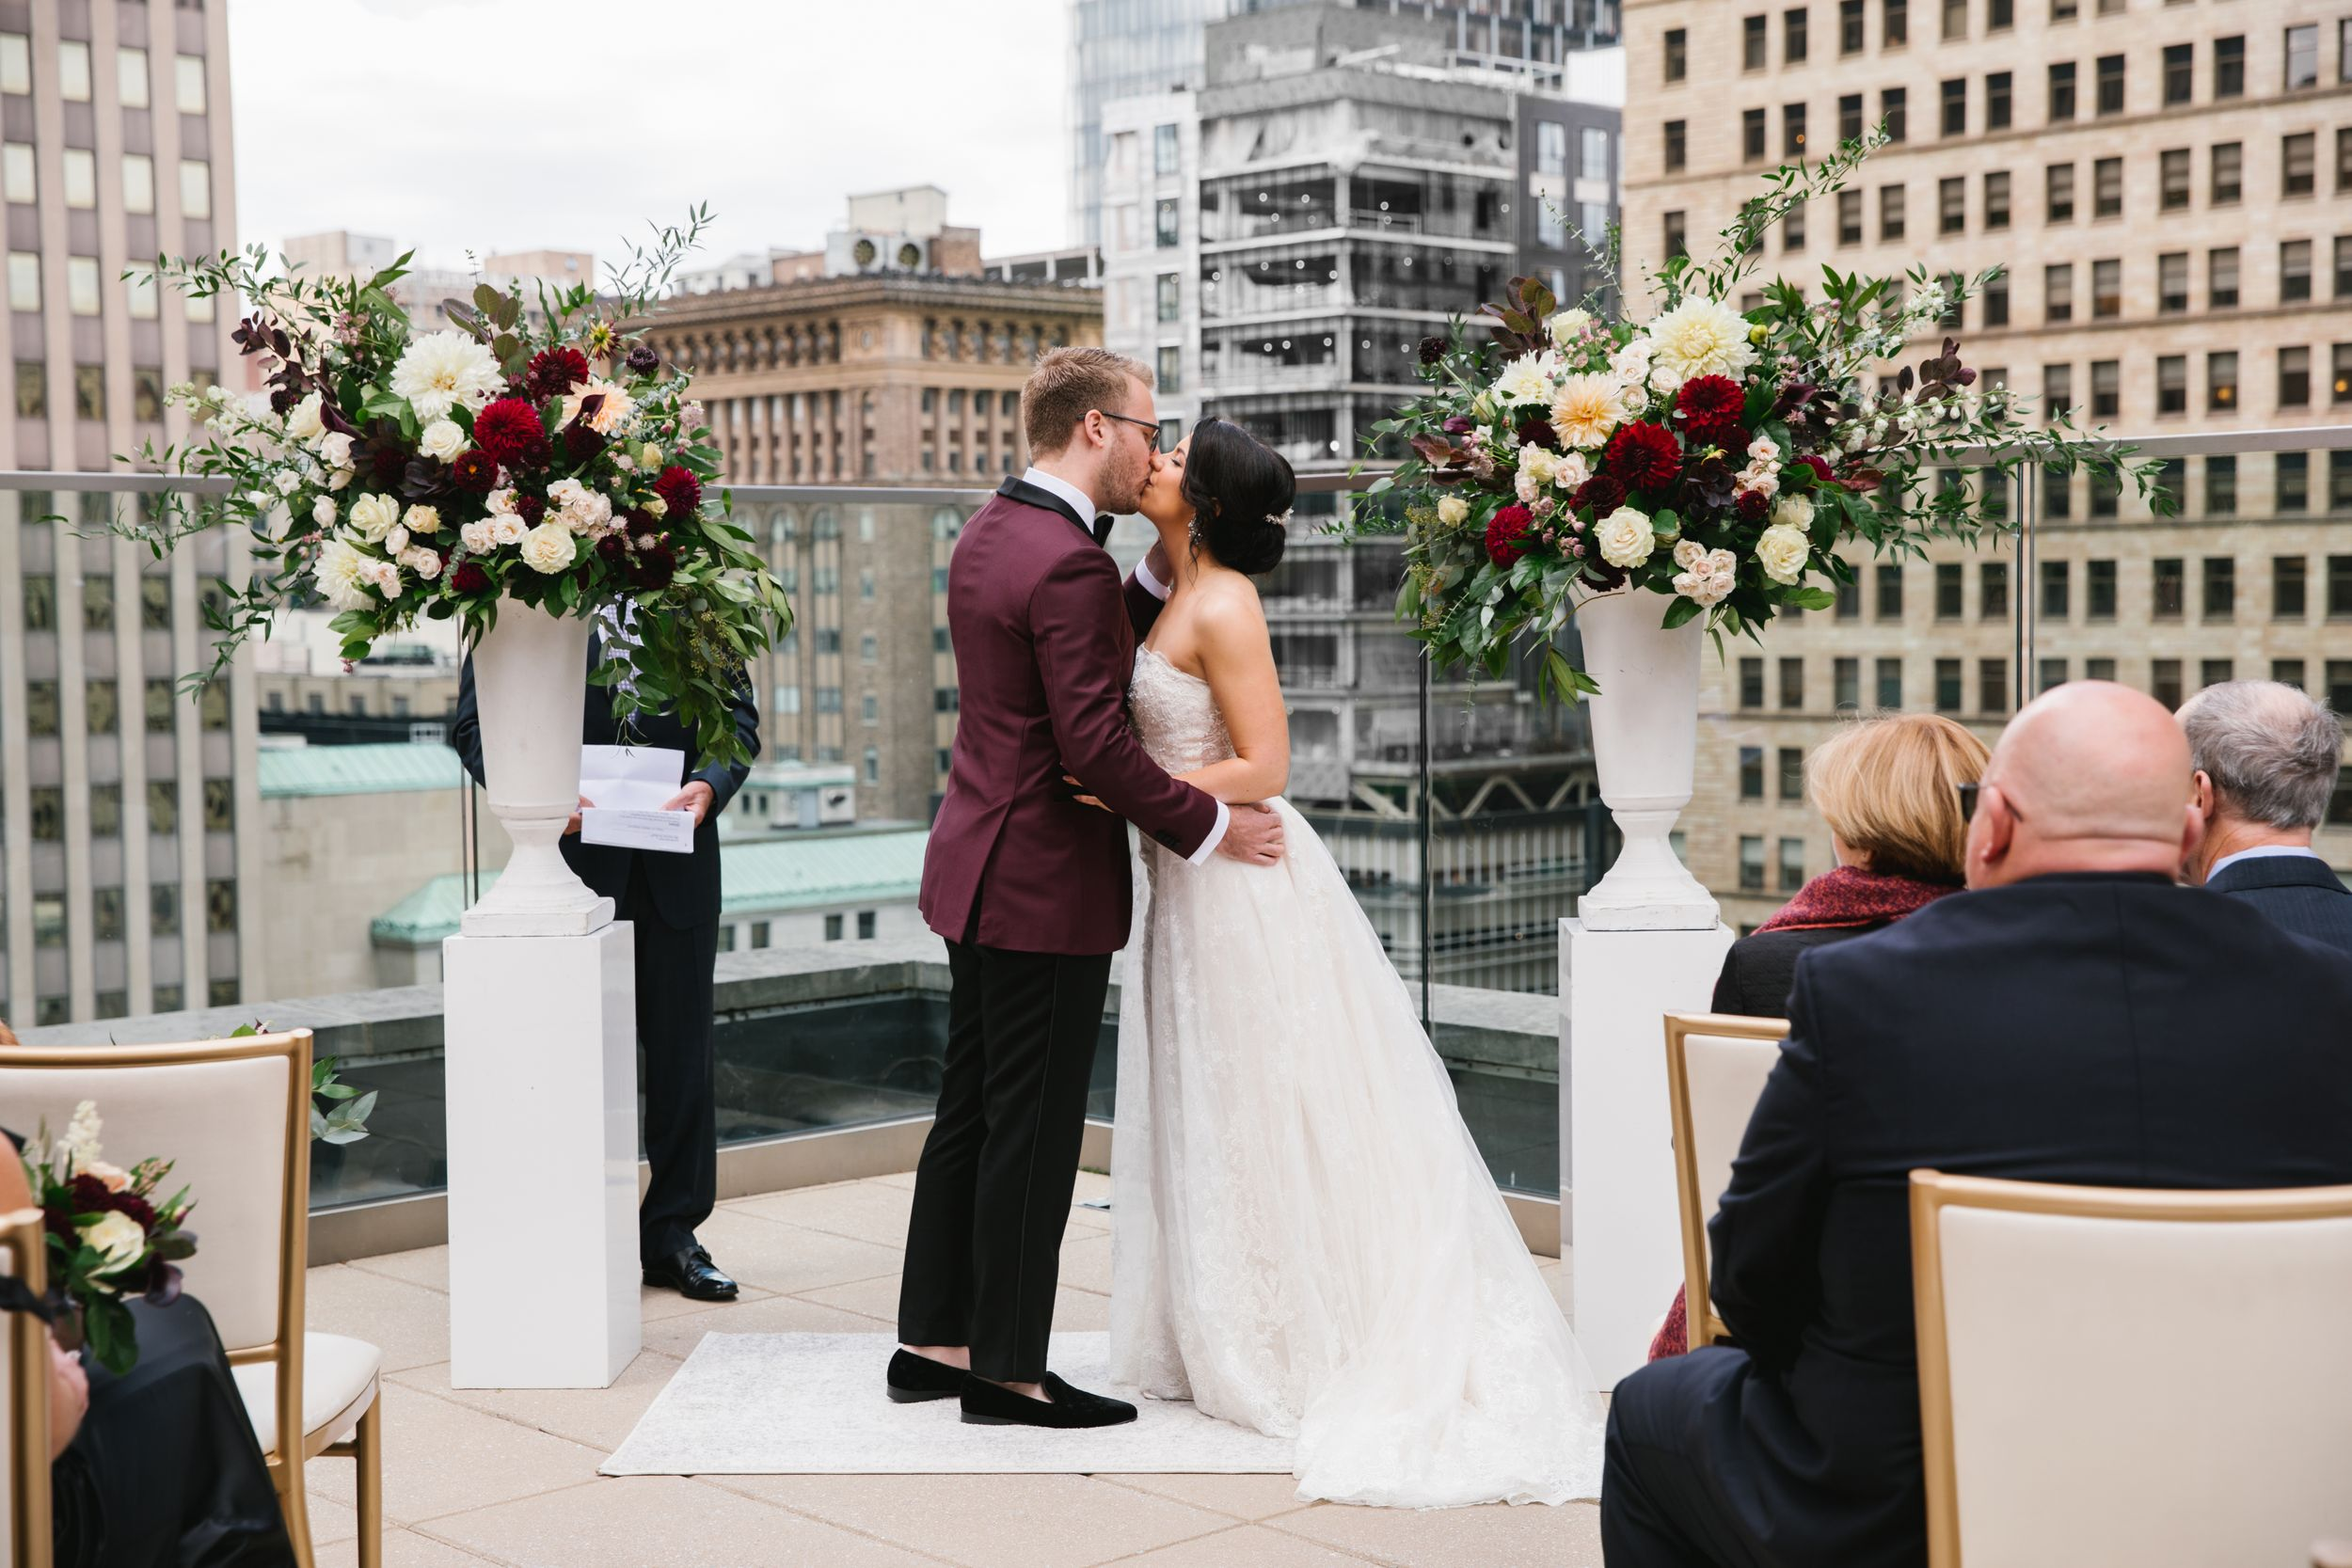 first kiss as husband and wife during rooftop ceremony in toronto ontario city wedding